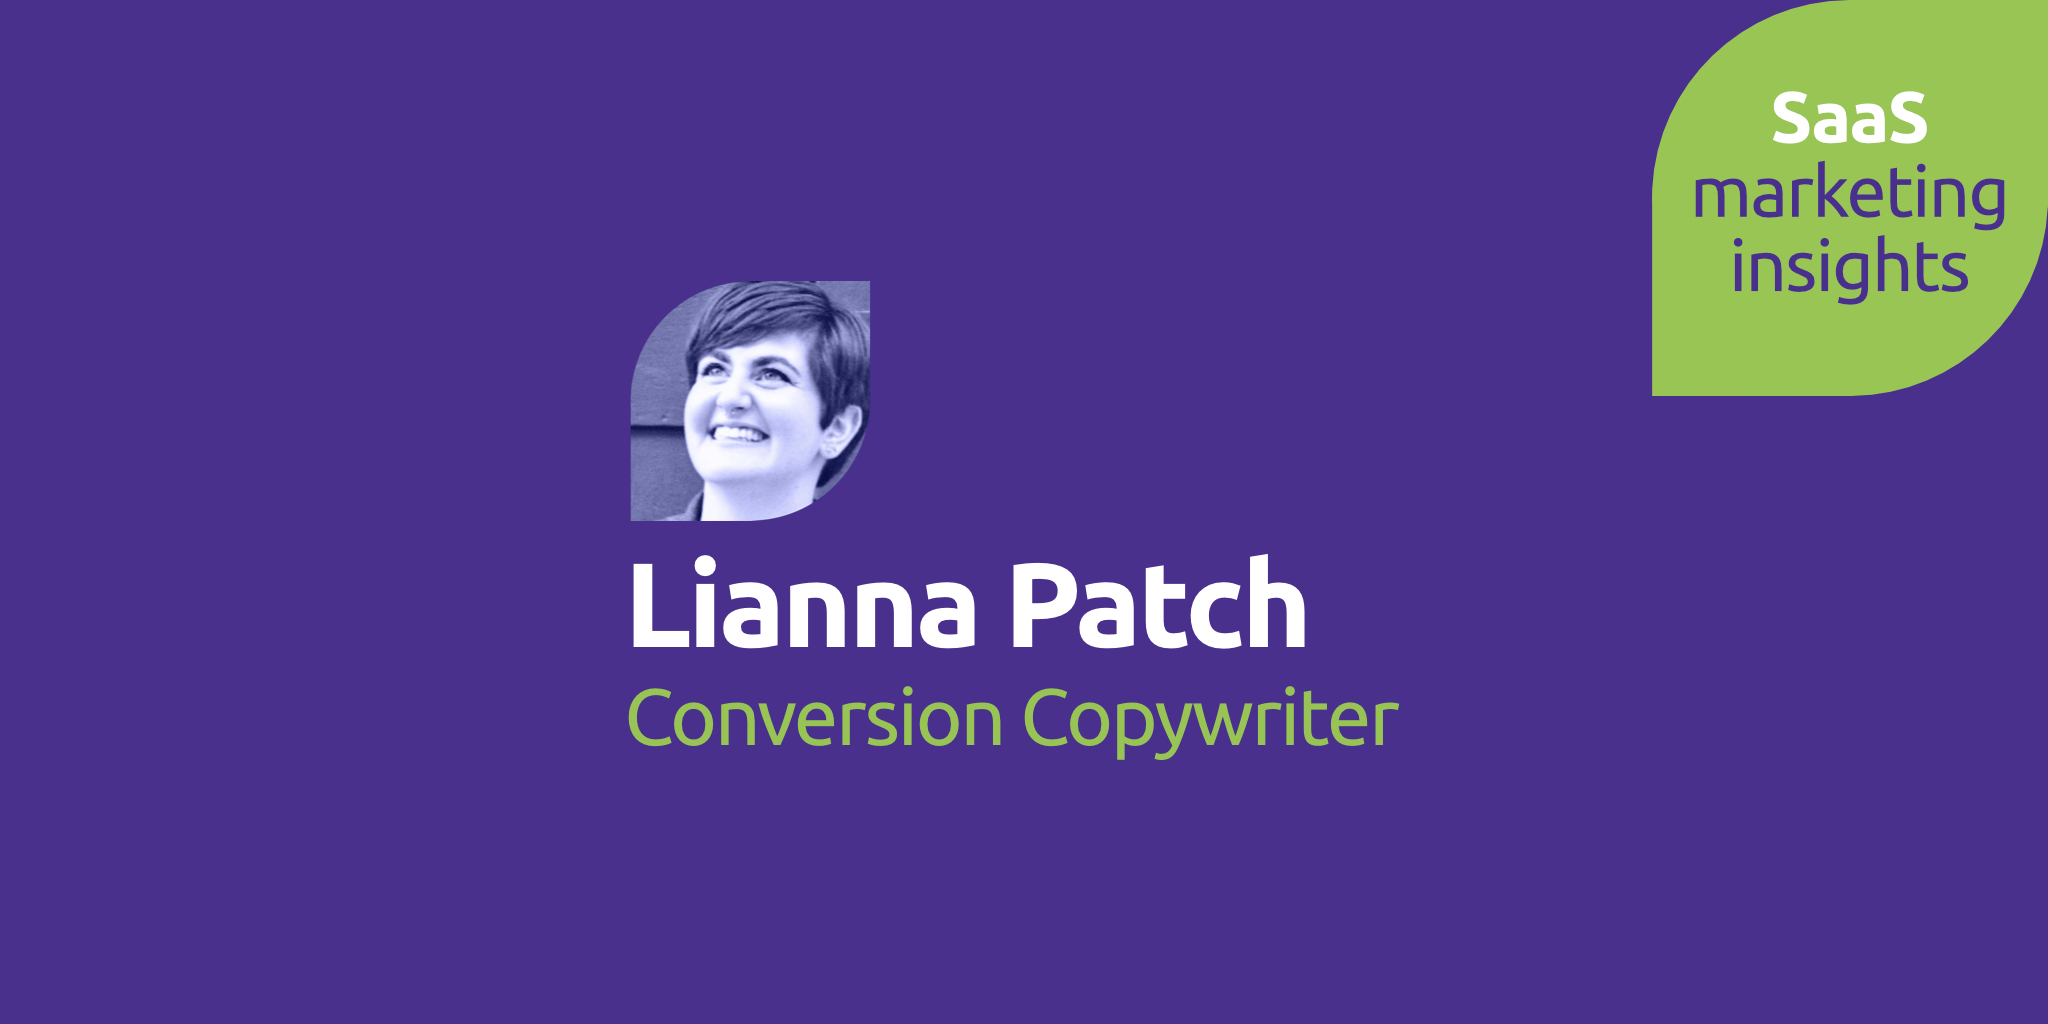 Lianna Patch, Conversion Copywriter